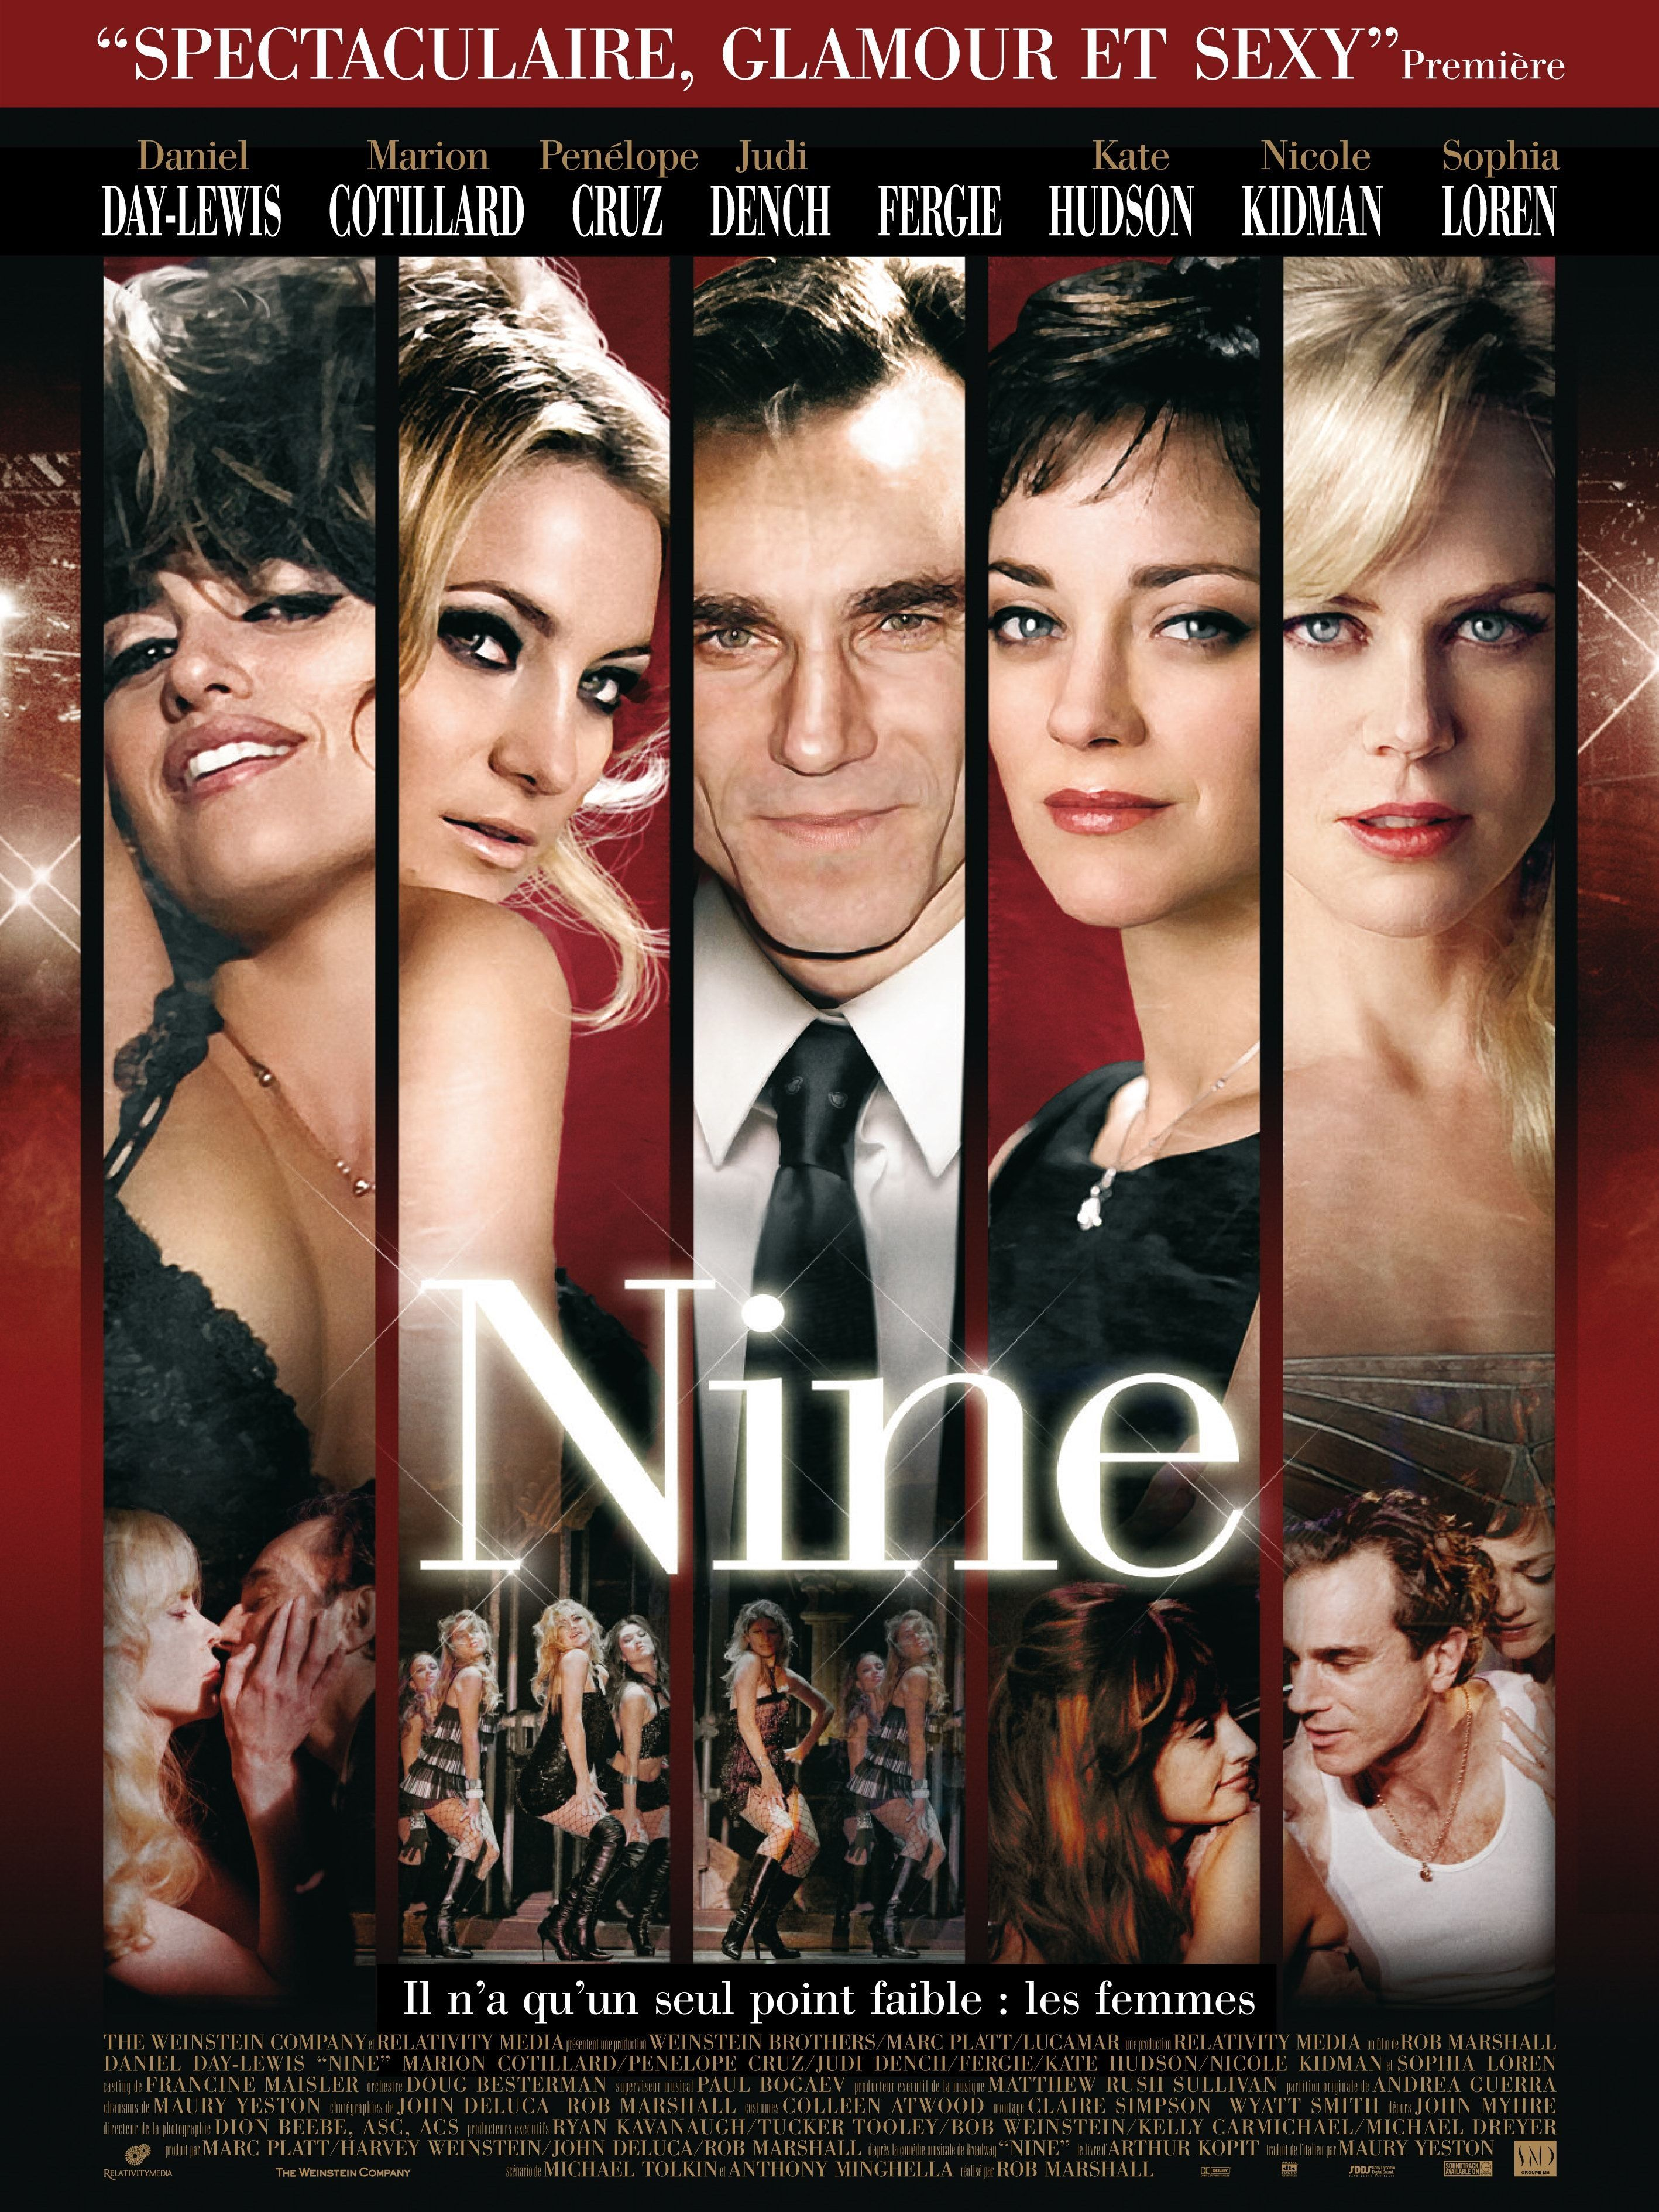 Ninenot the best film ever but it has so many wonderful